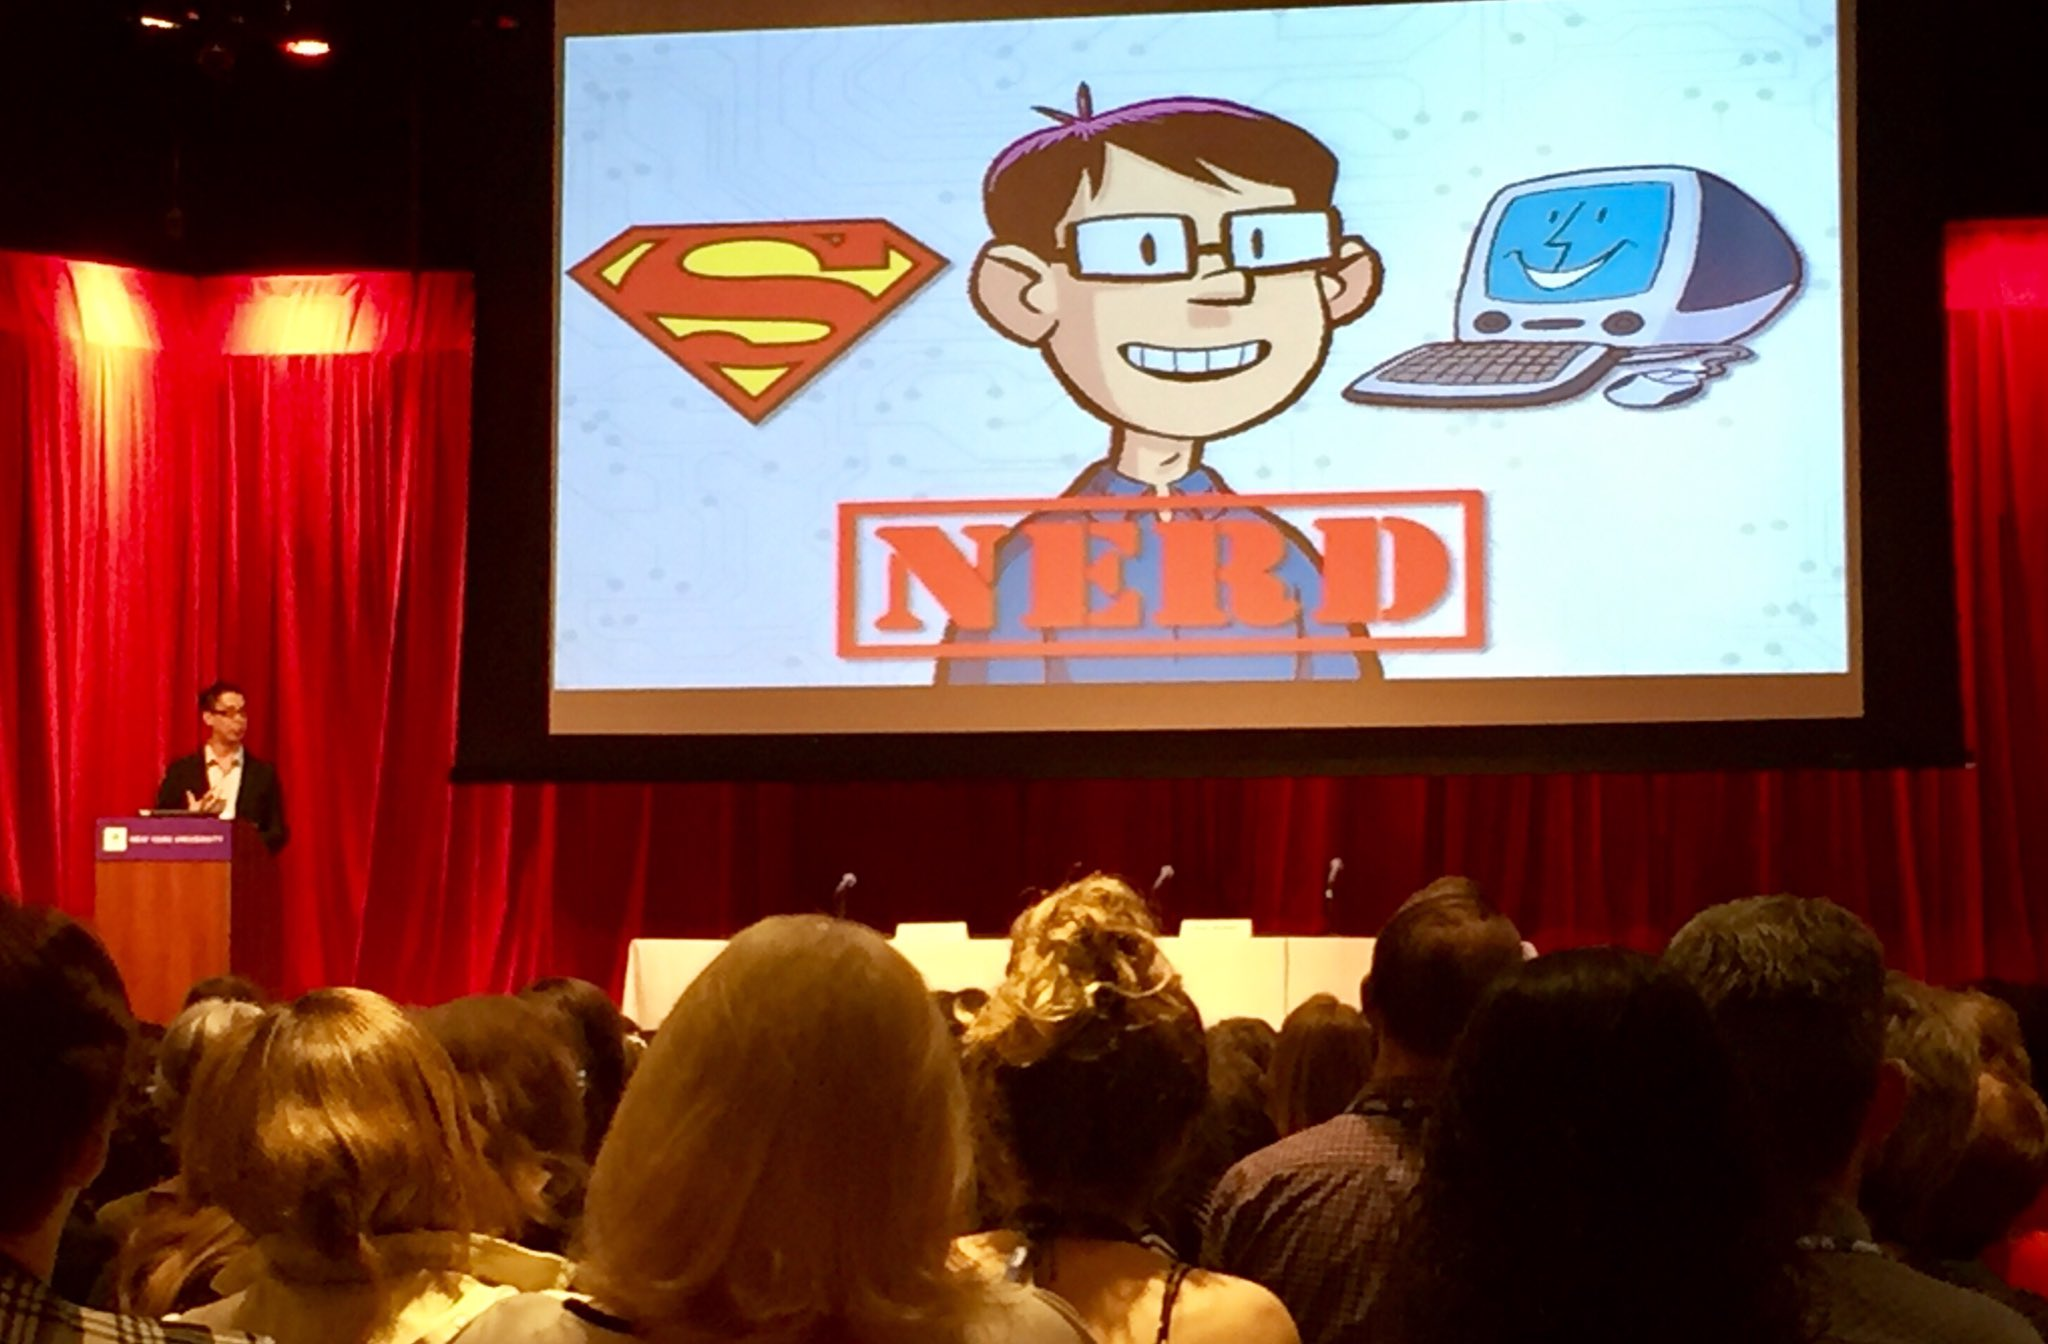 Best way to start your morning? Listening to @geneluenyang at #sljdod17 📚📚📚 https://t.co/2Lq2aIO75e